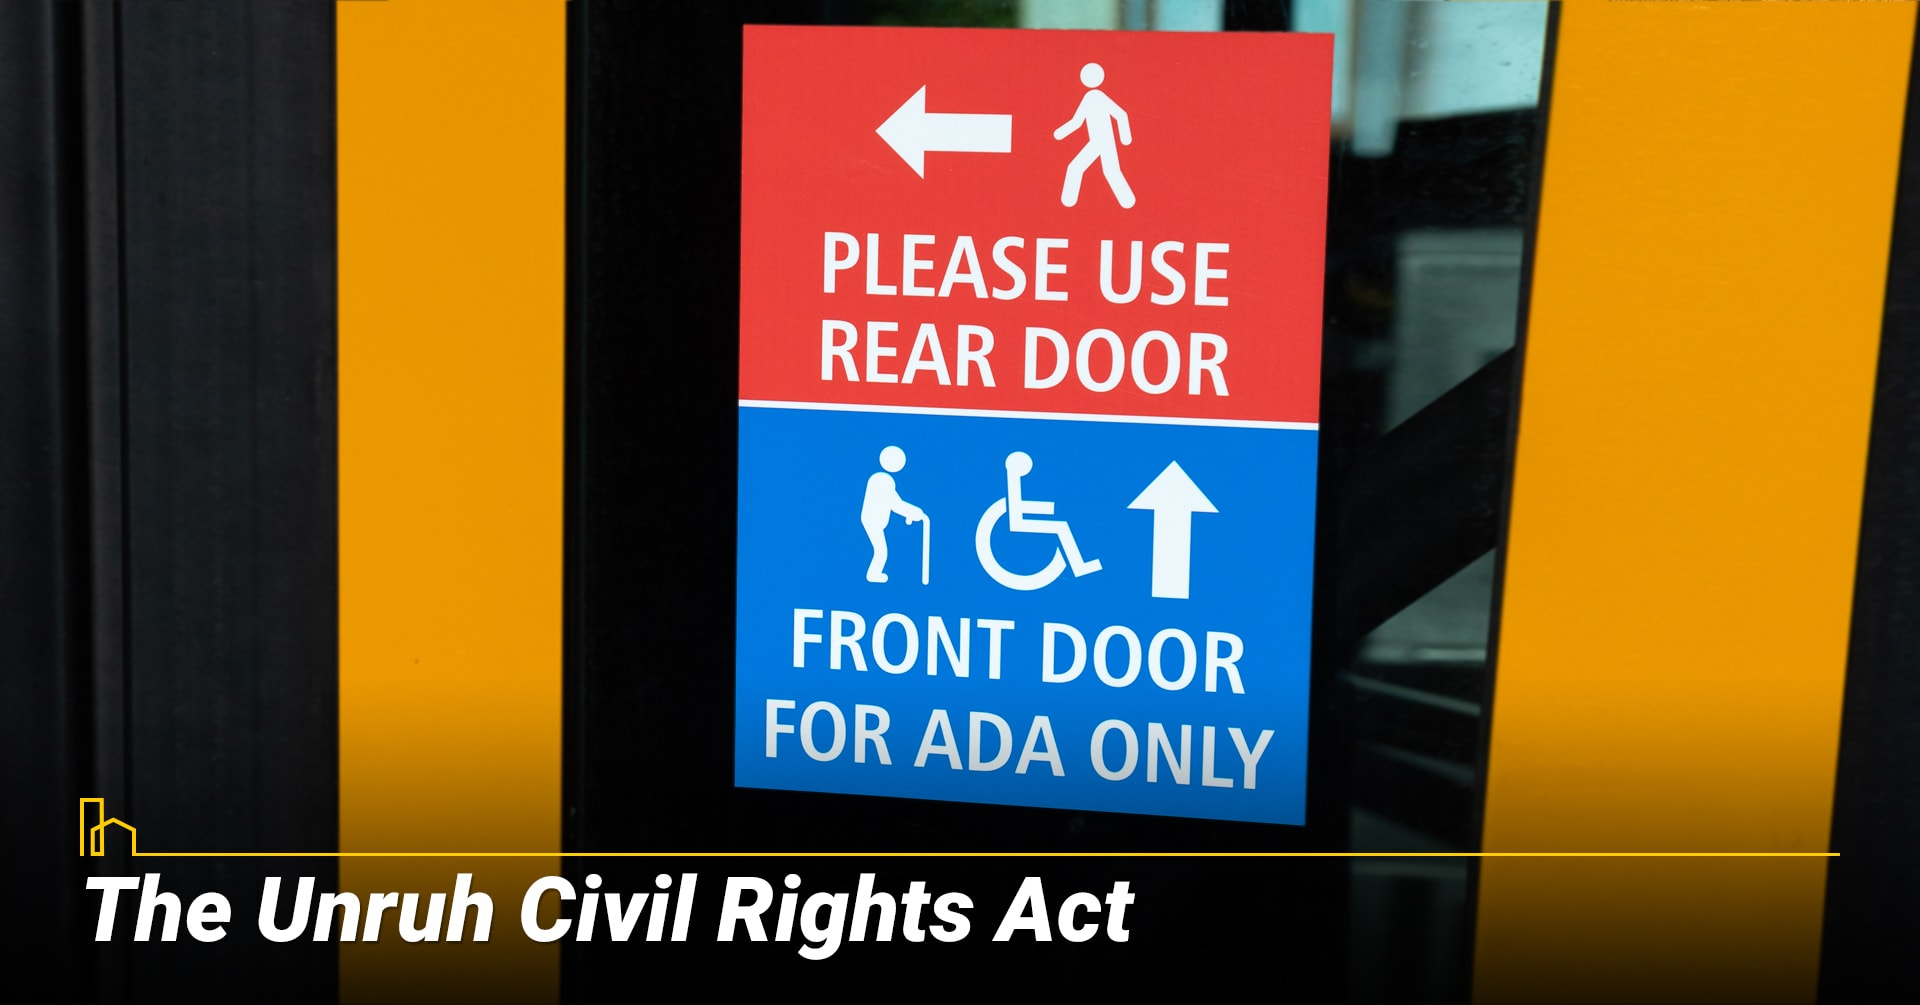 The Unruh Civil Rights Act, learn about the laws